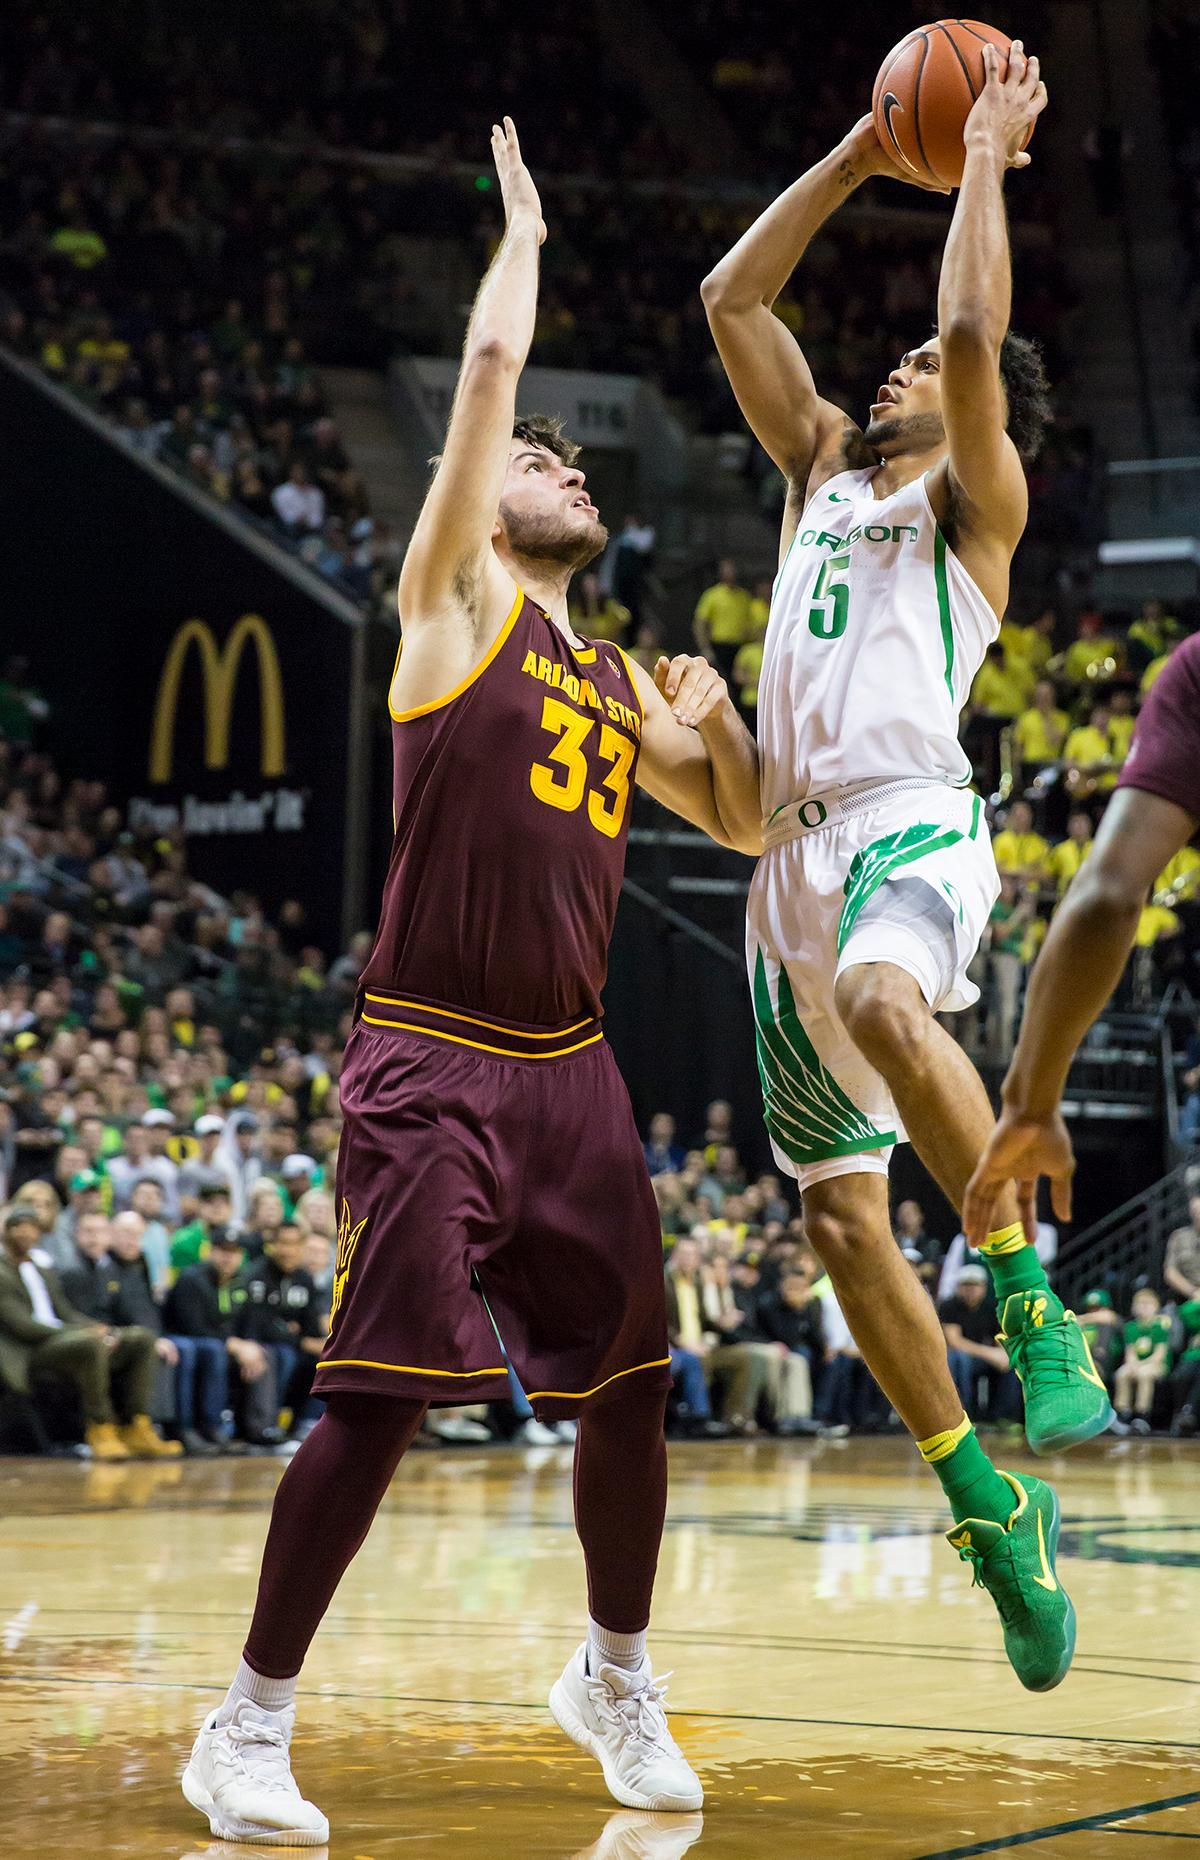 Oregon guard Tyler Dorsey (#5) leaps over Arizona State forward Roman Vila (#33) and towards the basket. The Oregon Ducks defeated the Arizona State Sun Devils 71 to 70. Photo by Ben Lonergan, Oregon News Lab